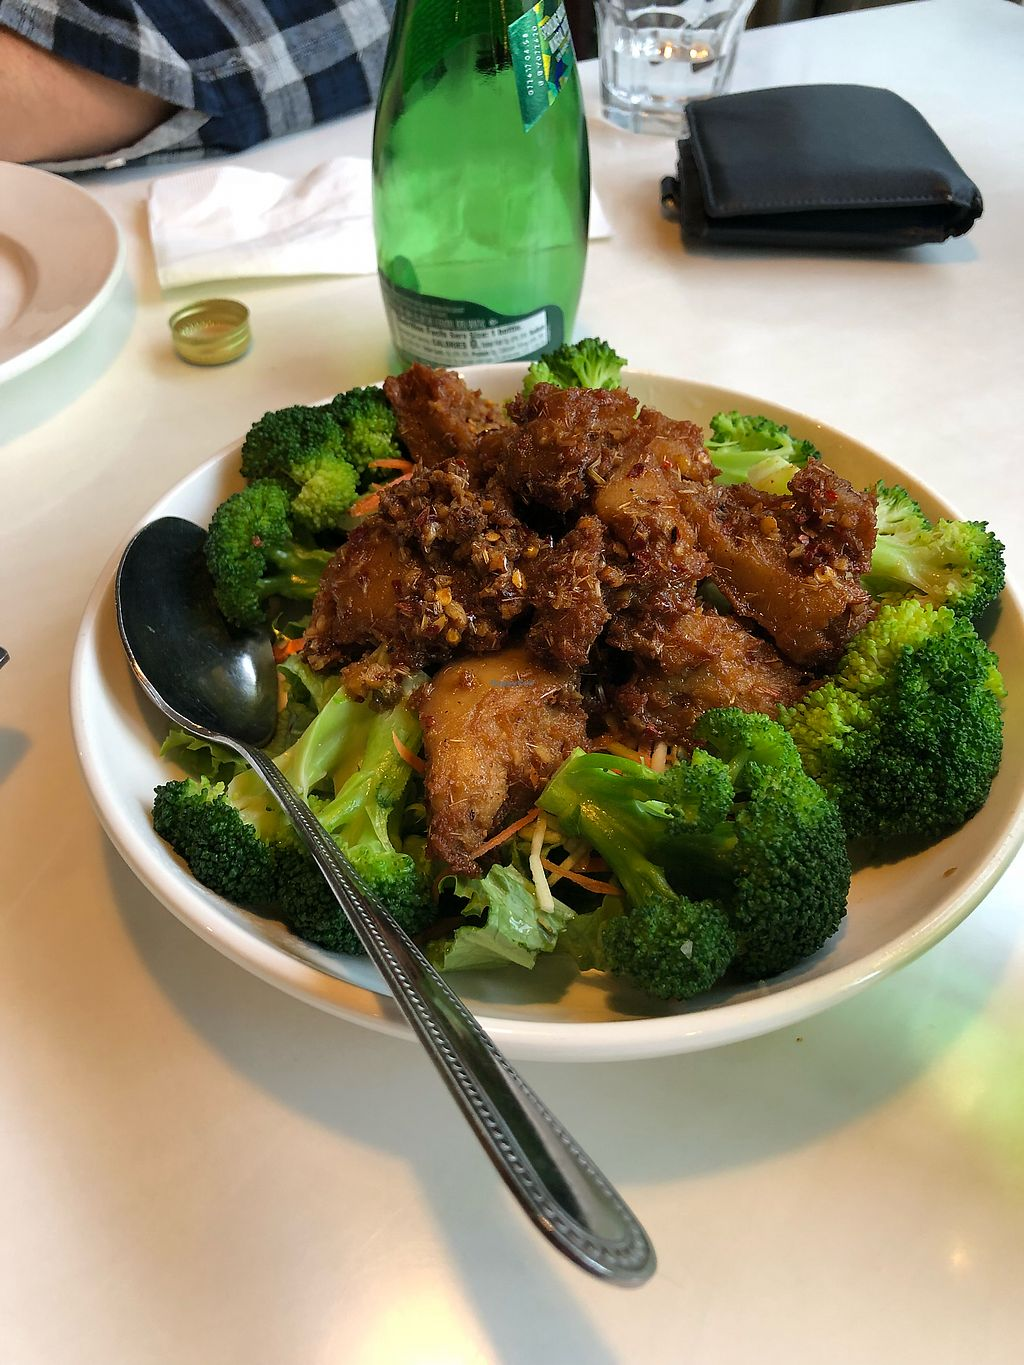 """Photo of Golden Era Vegan Restaurant  by <a href=""""/members/profile/KaitlynnGill"""">KaitlynnGill</a> <br/>Lemongrass combo <br/> December 31, 2017  - <a href='/contact/abuse/image/1557/341401'>Report</a>"""